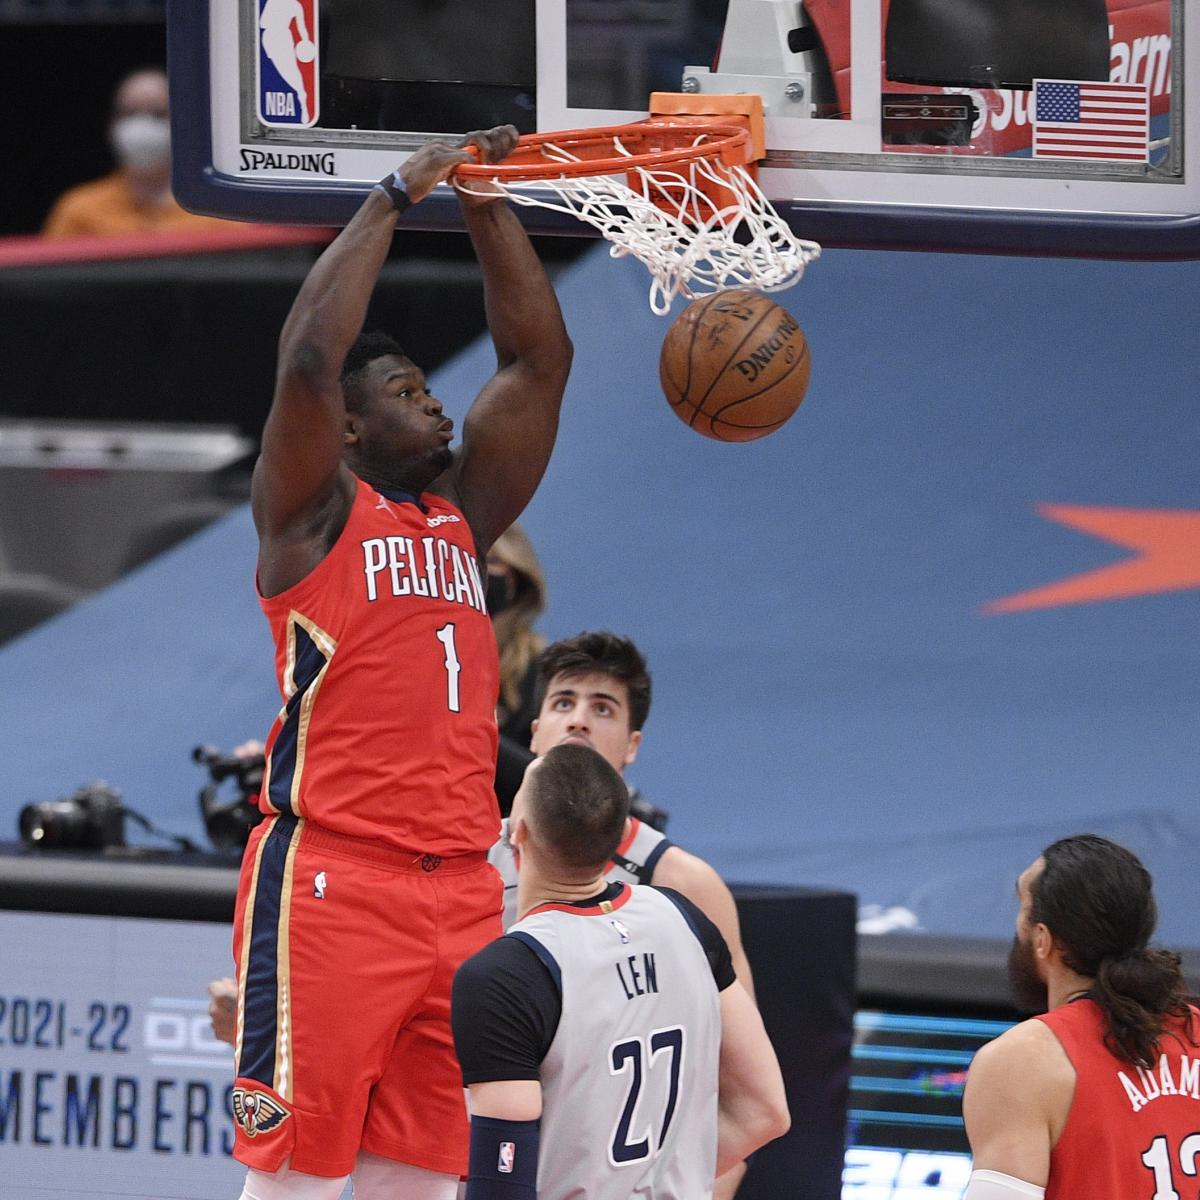 Pelicans' Zion Williamson 'Very Tempted' to Participate in NBA Dunk Contest